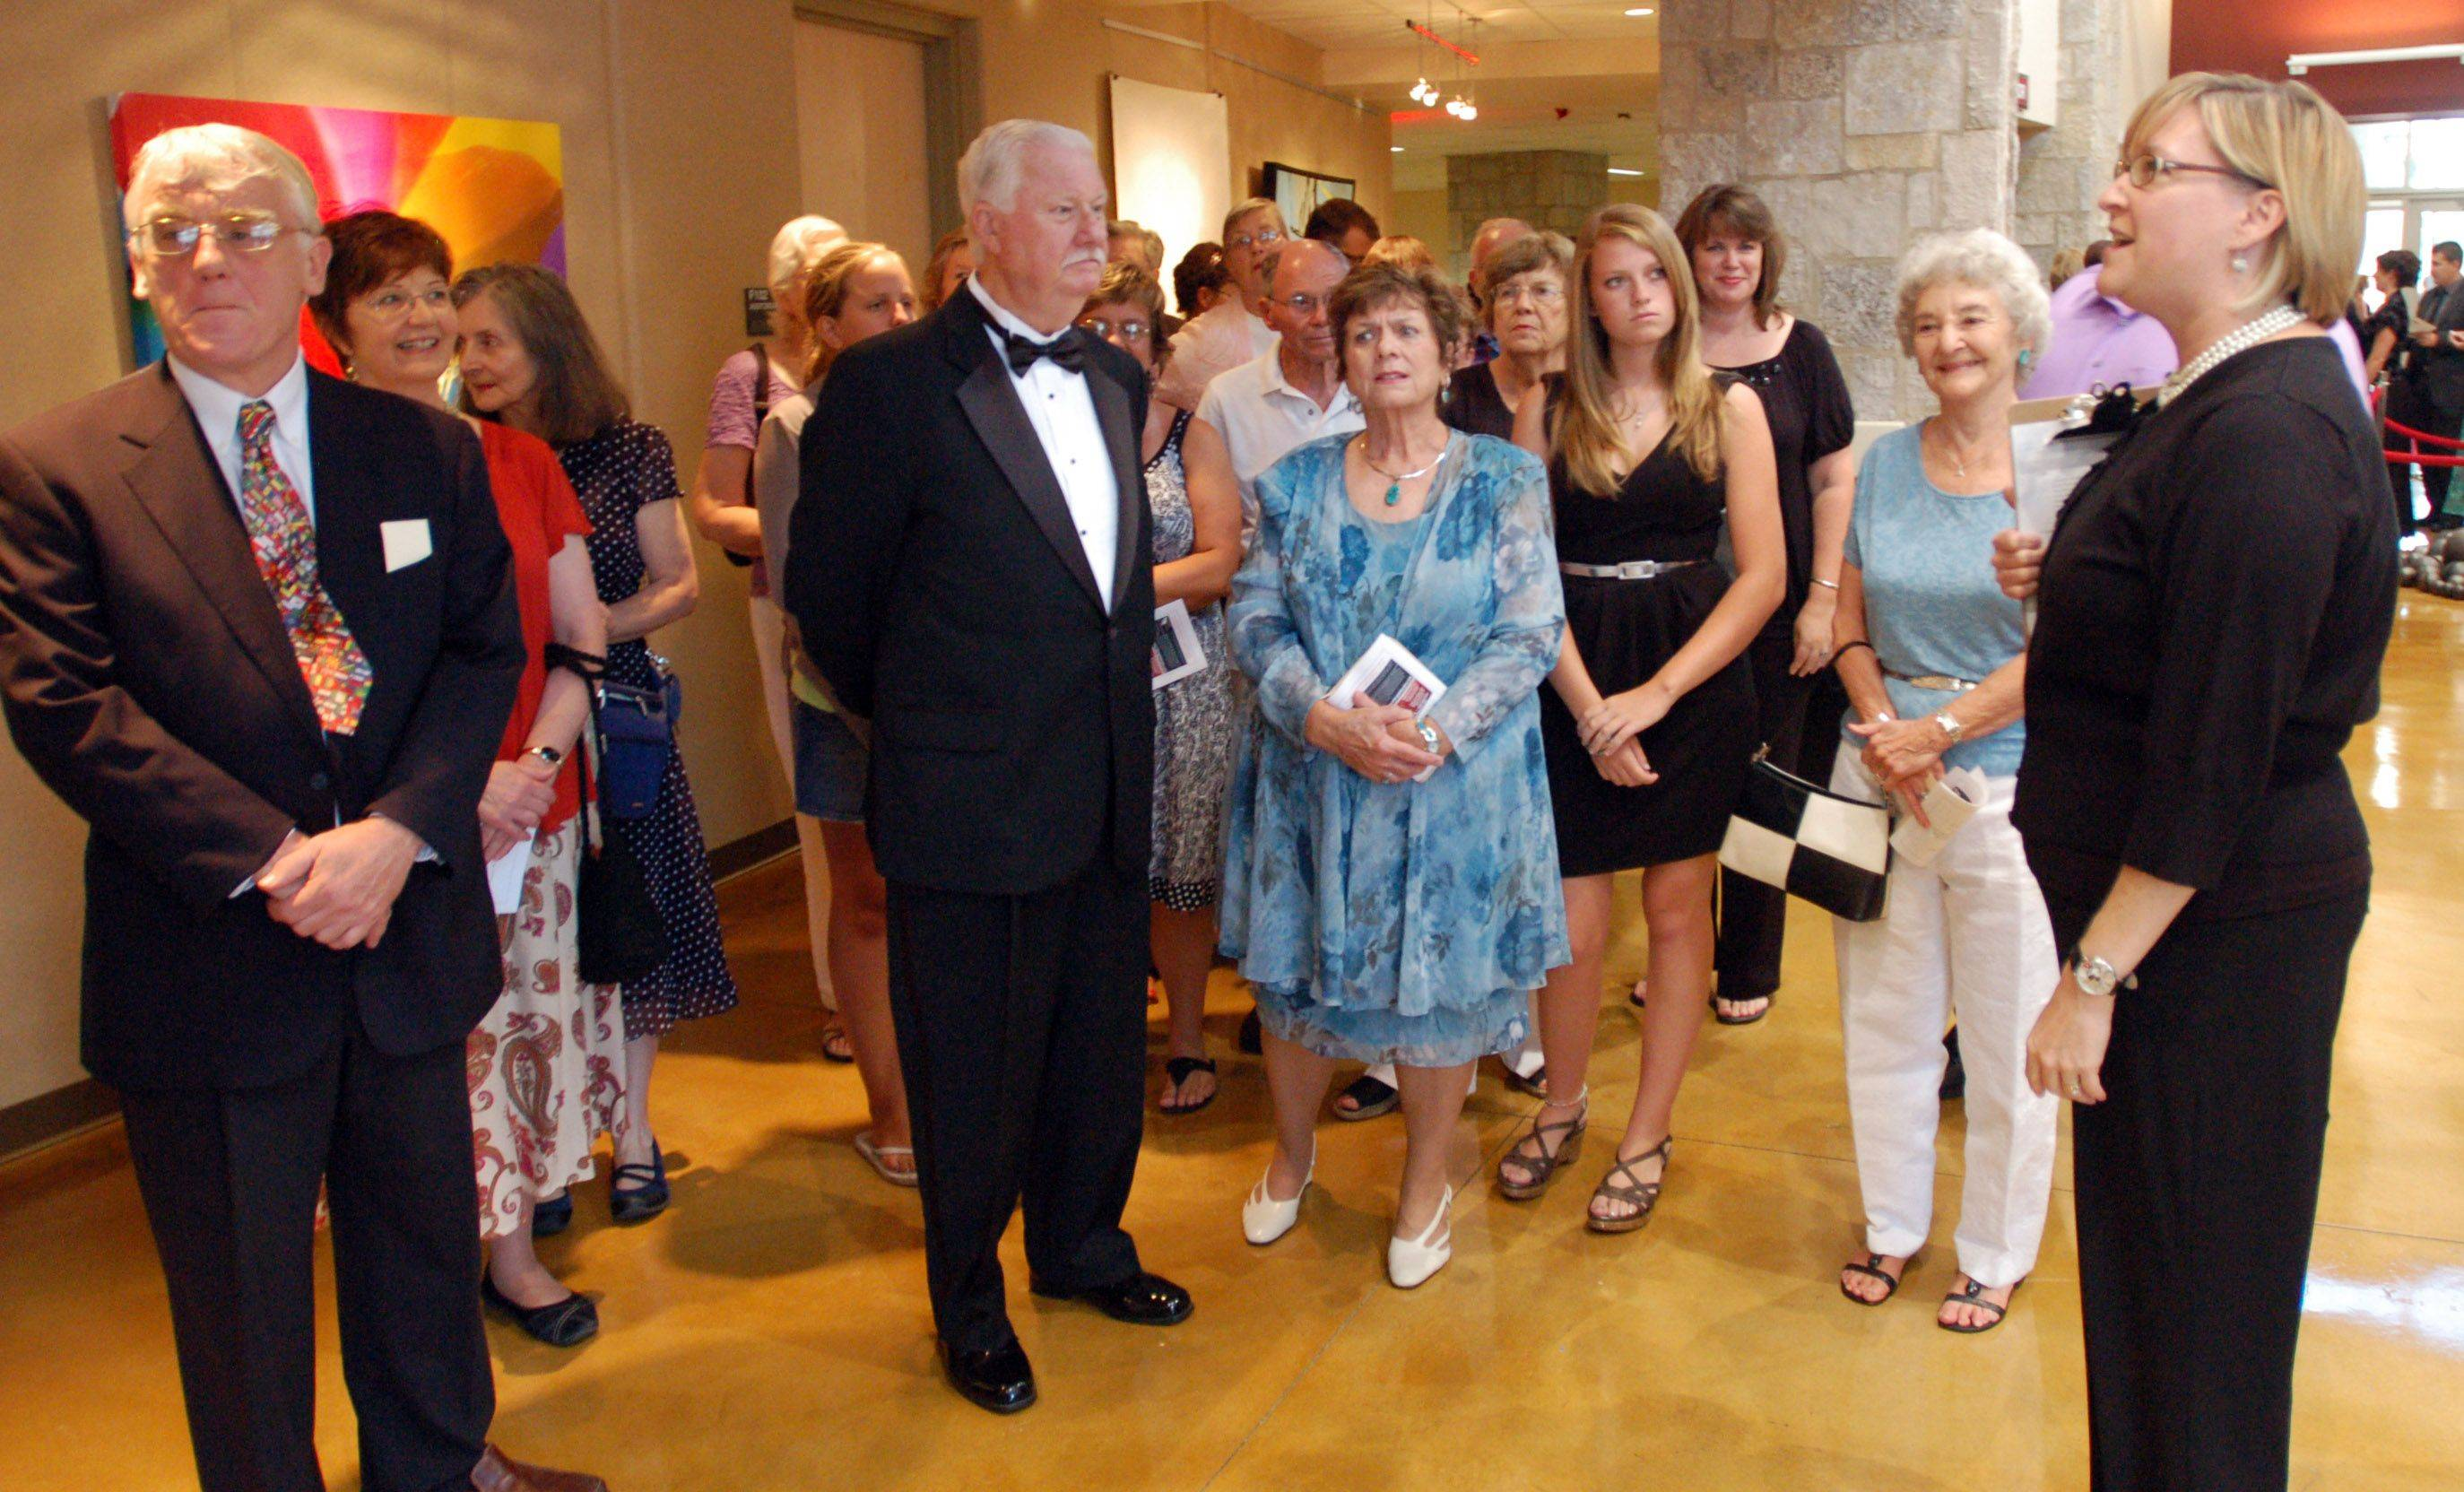 Several tours were given during the Batavia Fine Arts Centre's Red Carpet Gala opening on Saturday. The arts center is the school's first real auditorium, and will also serve as a community center for the city of Batavia.